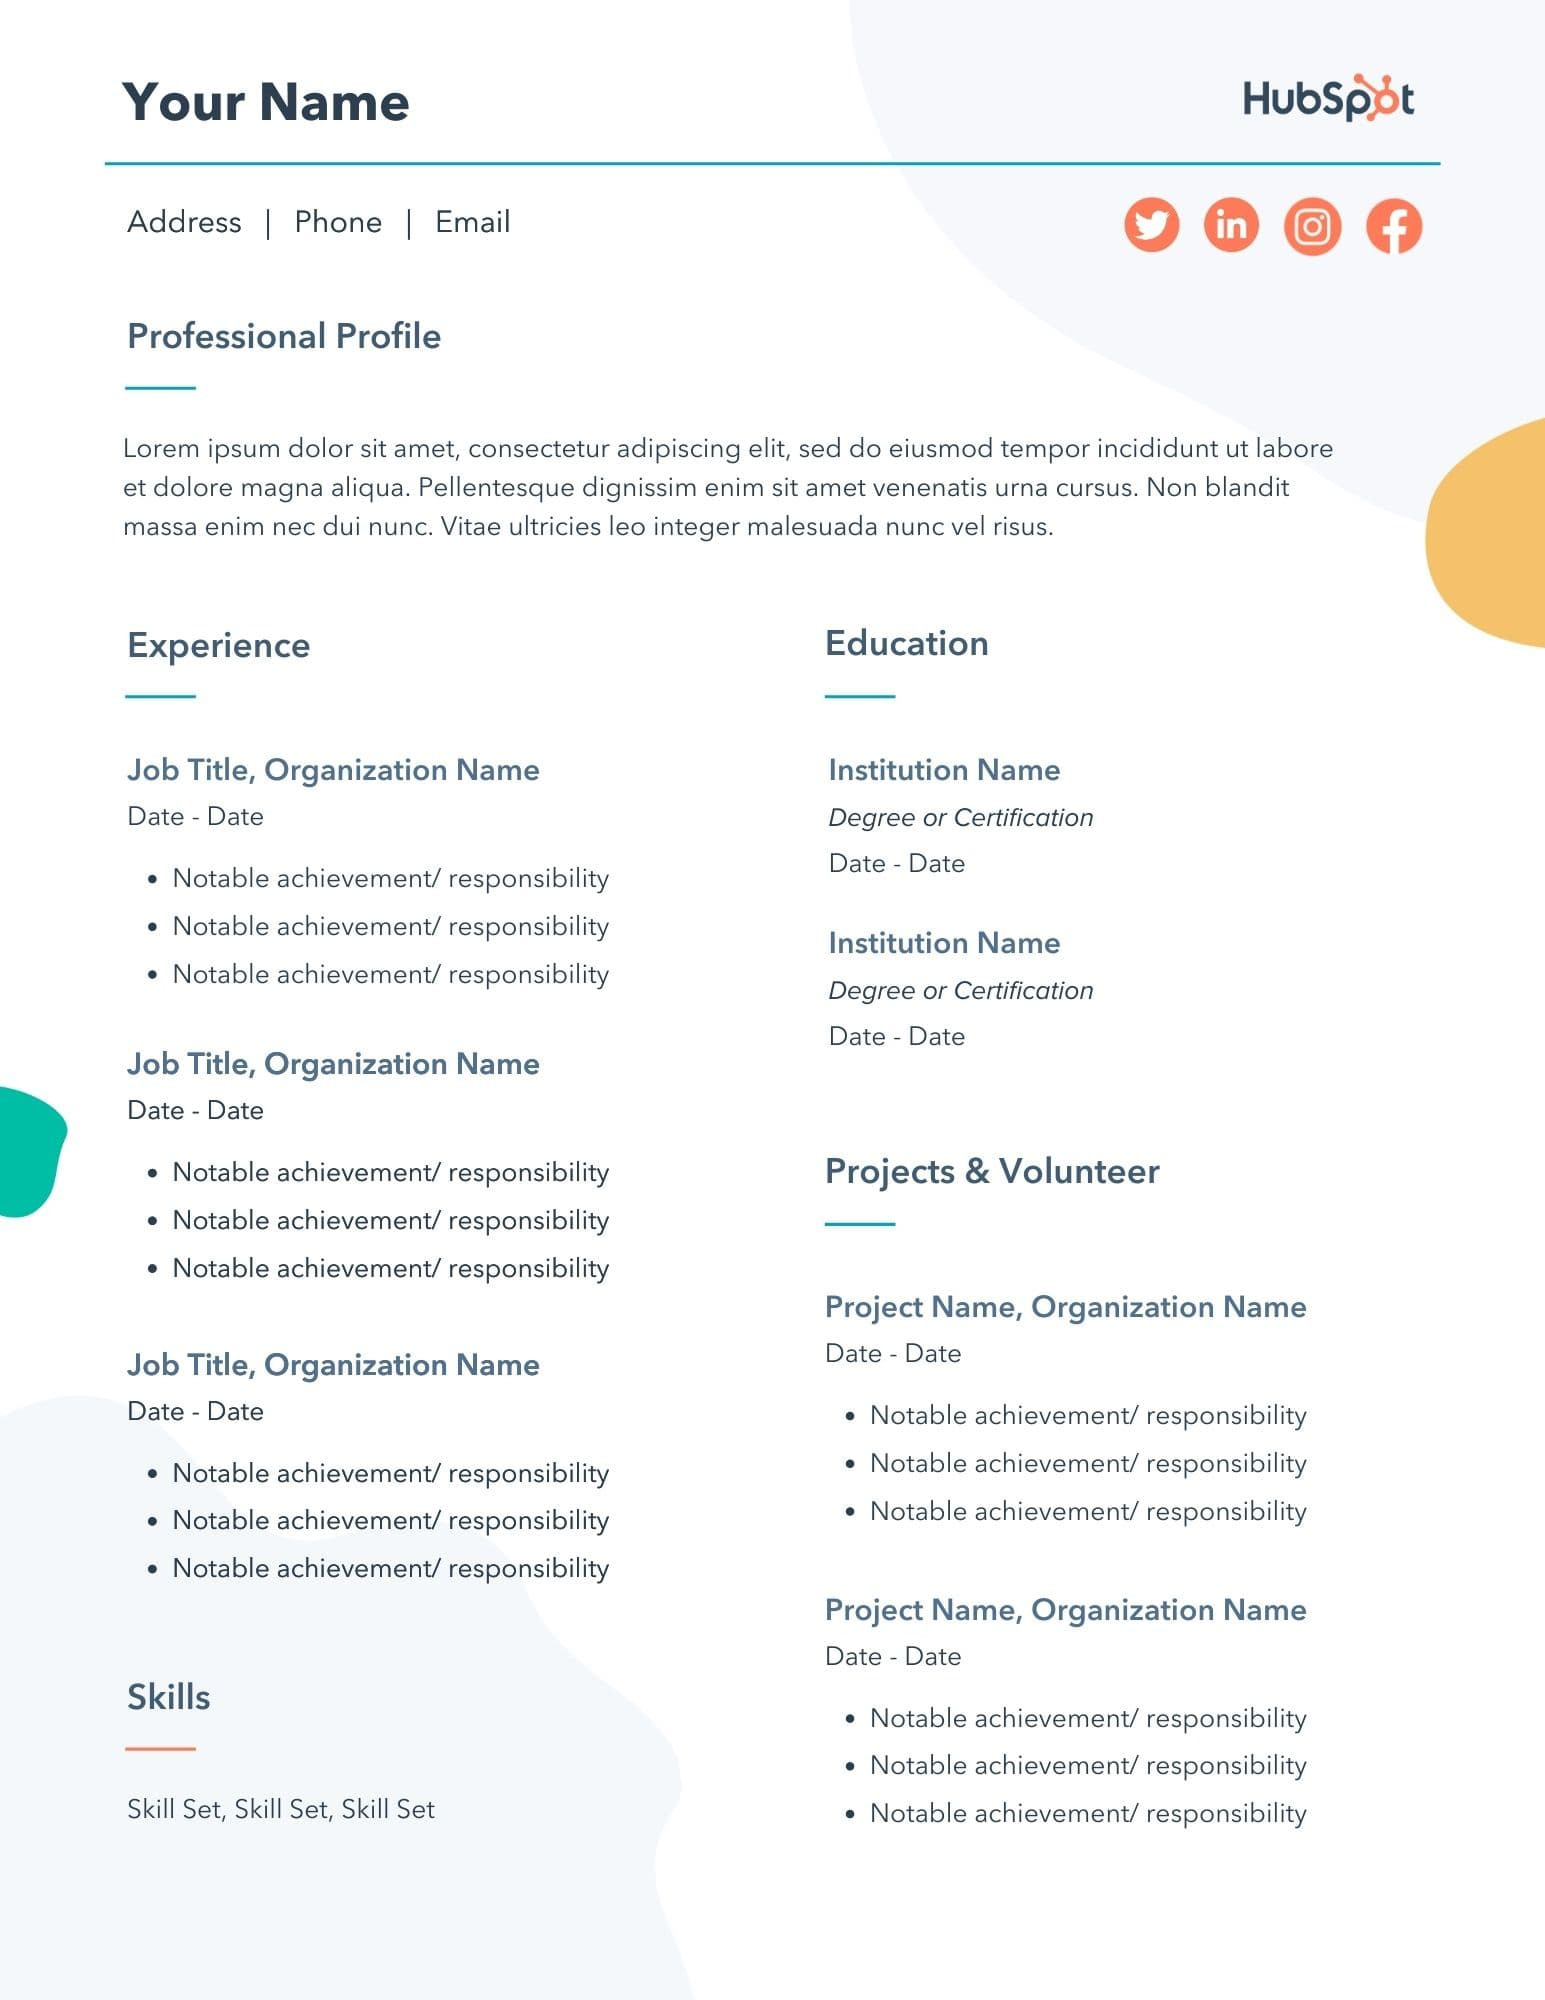 free resume templates for microsoft word to make your own job application pdf template Resume Resume For Job Application Pdf